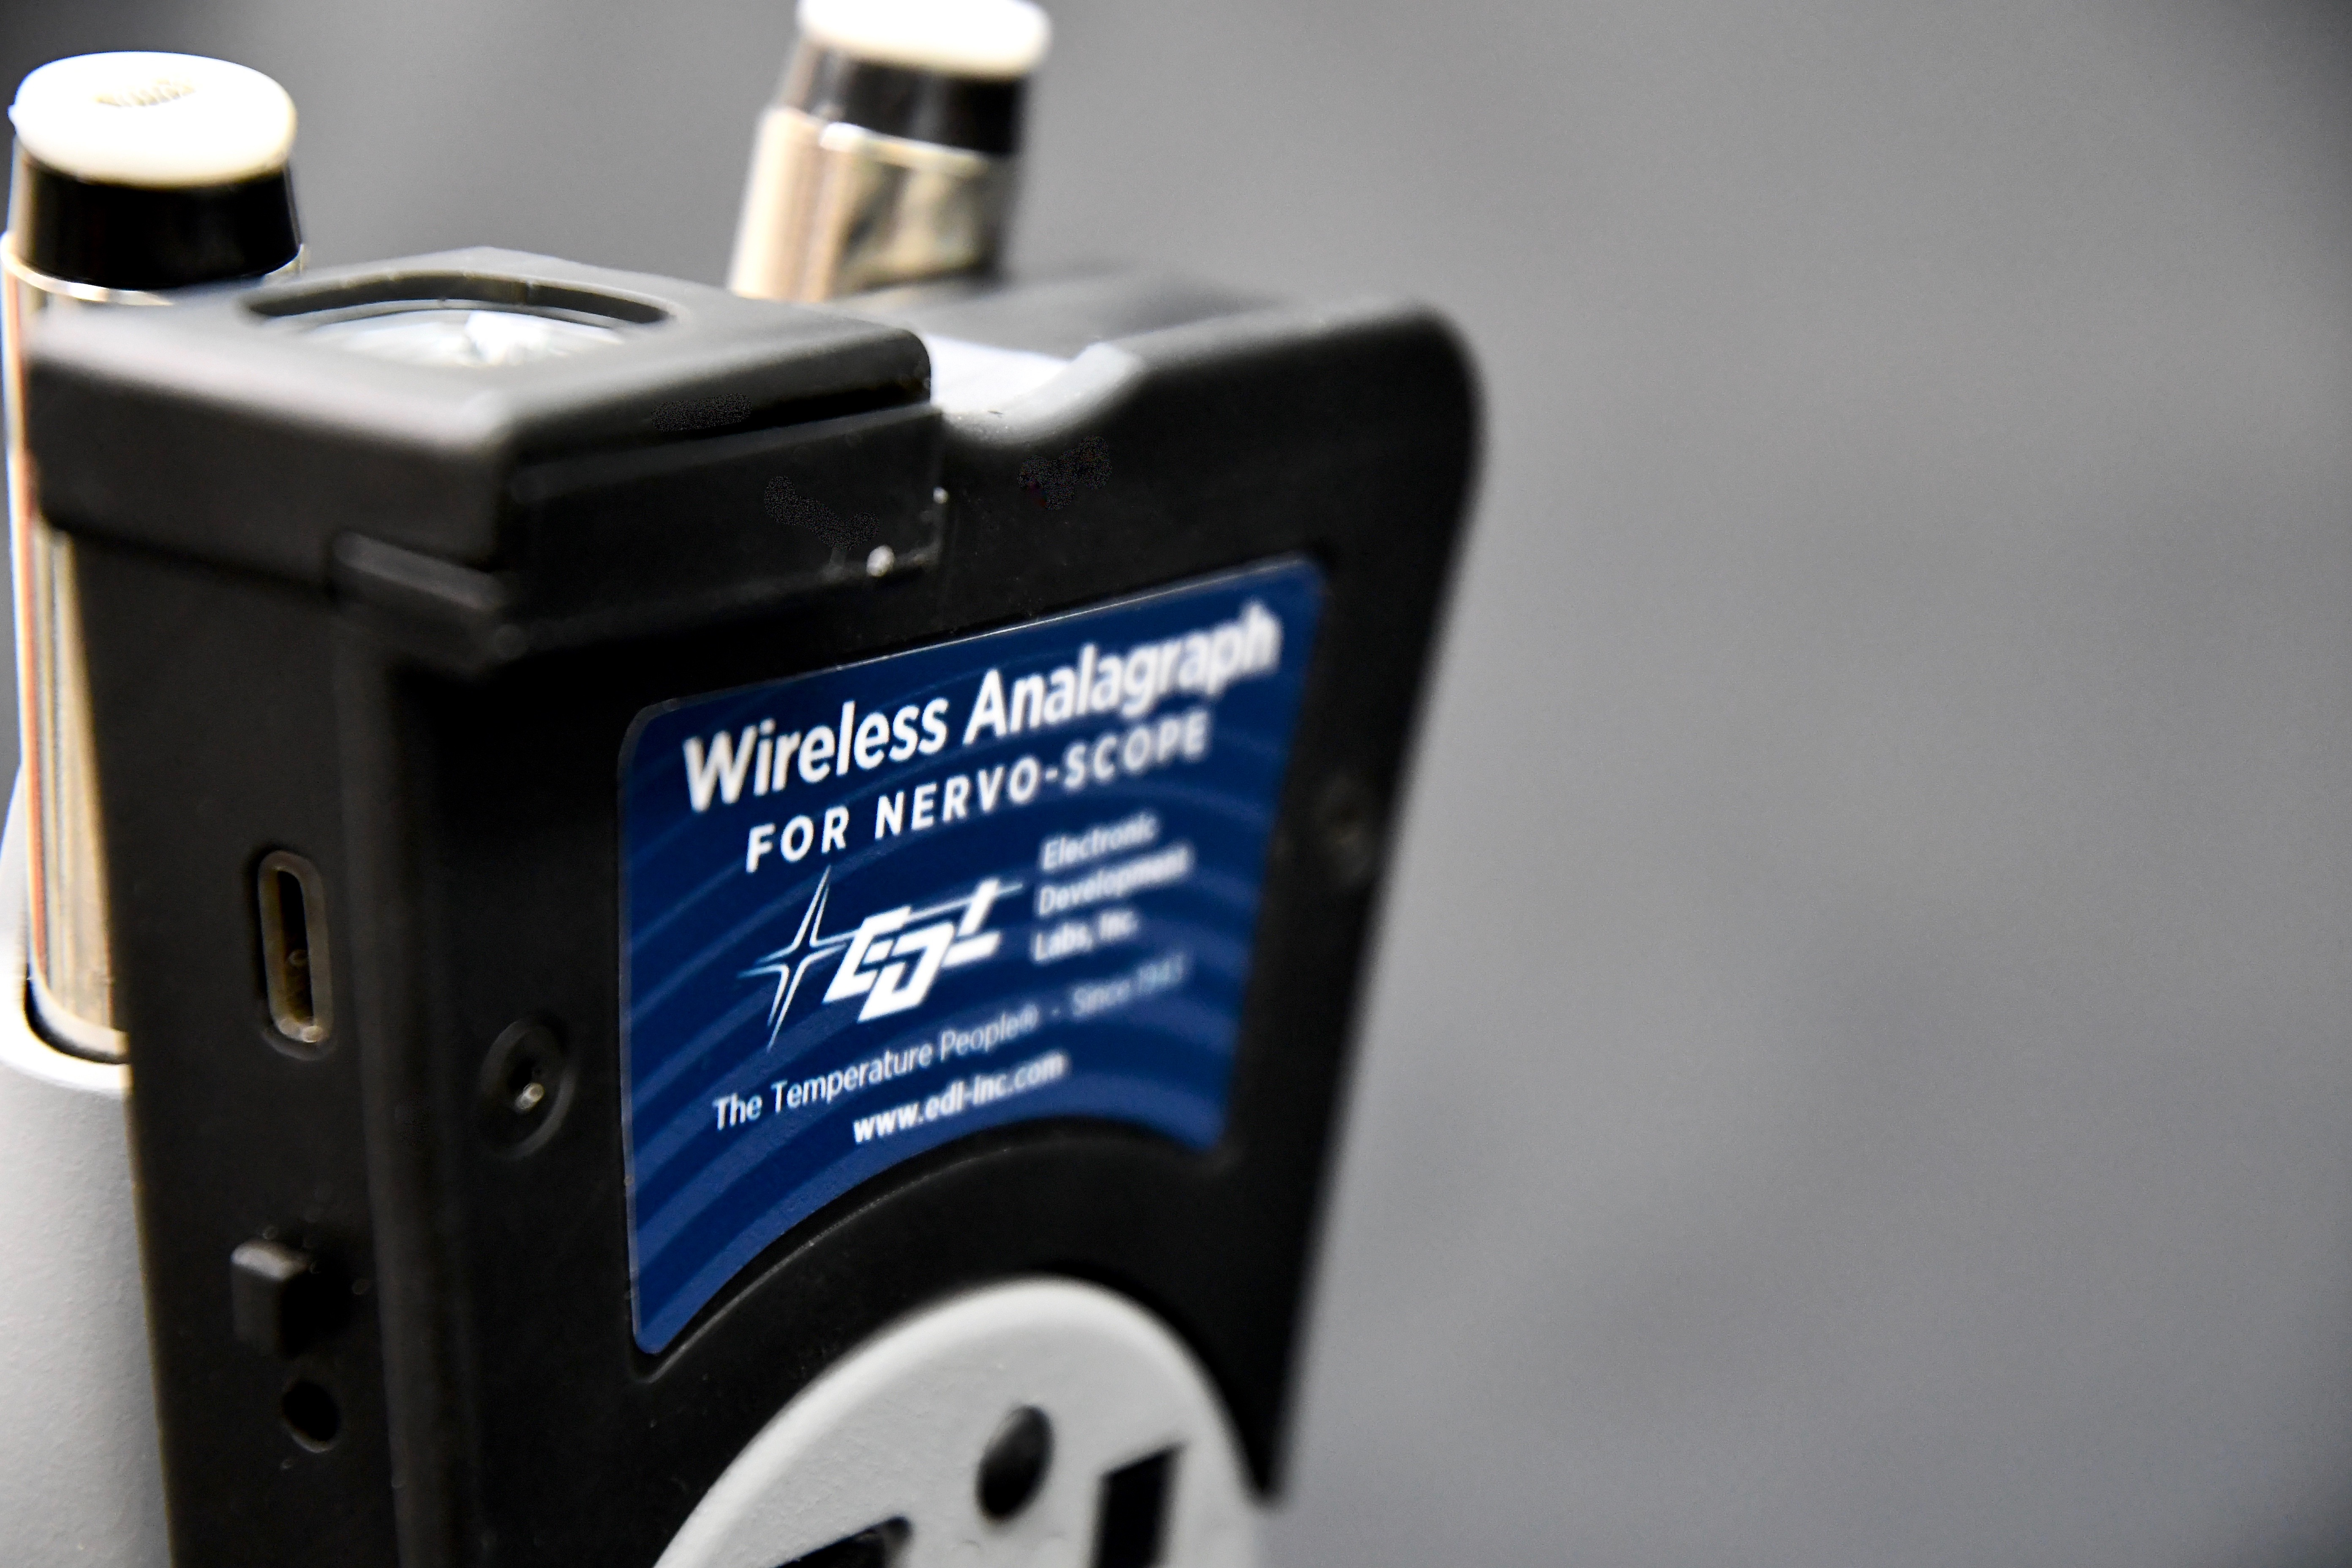 Wireless Analagraph